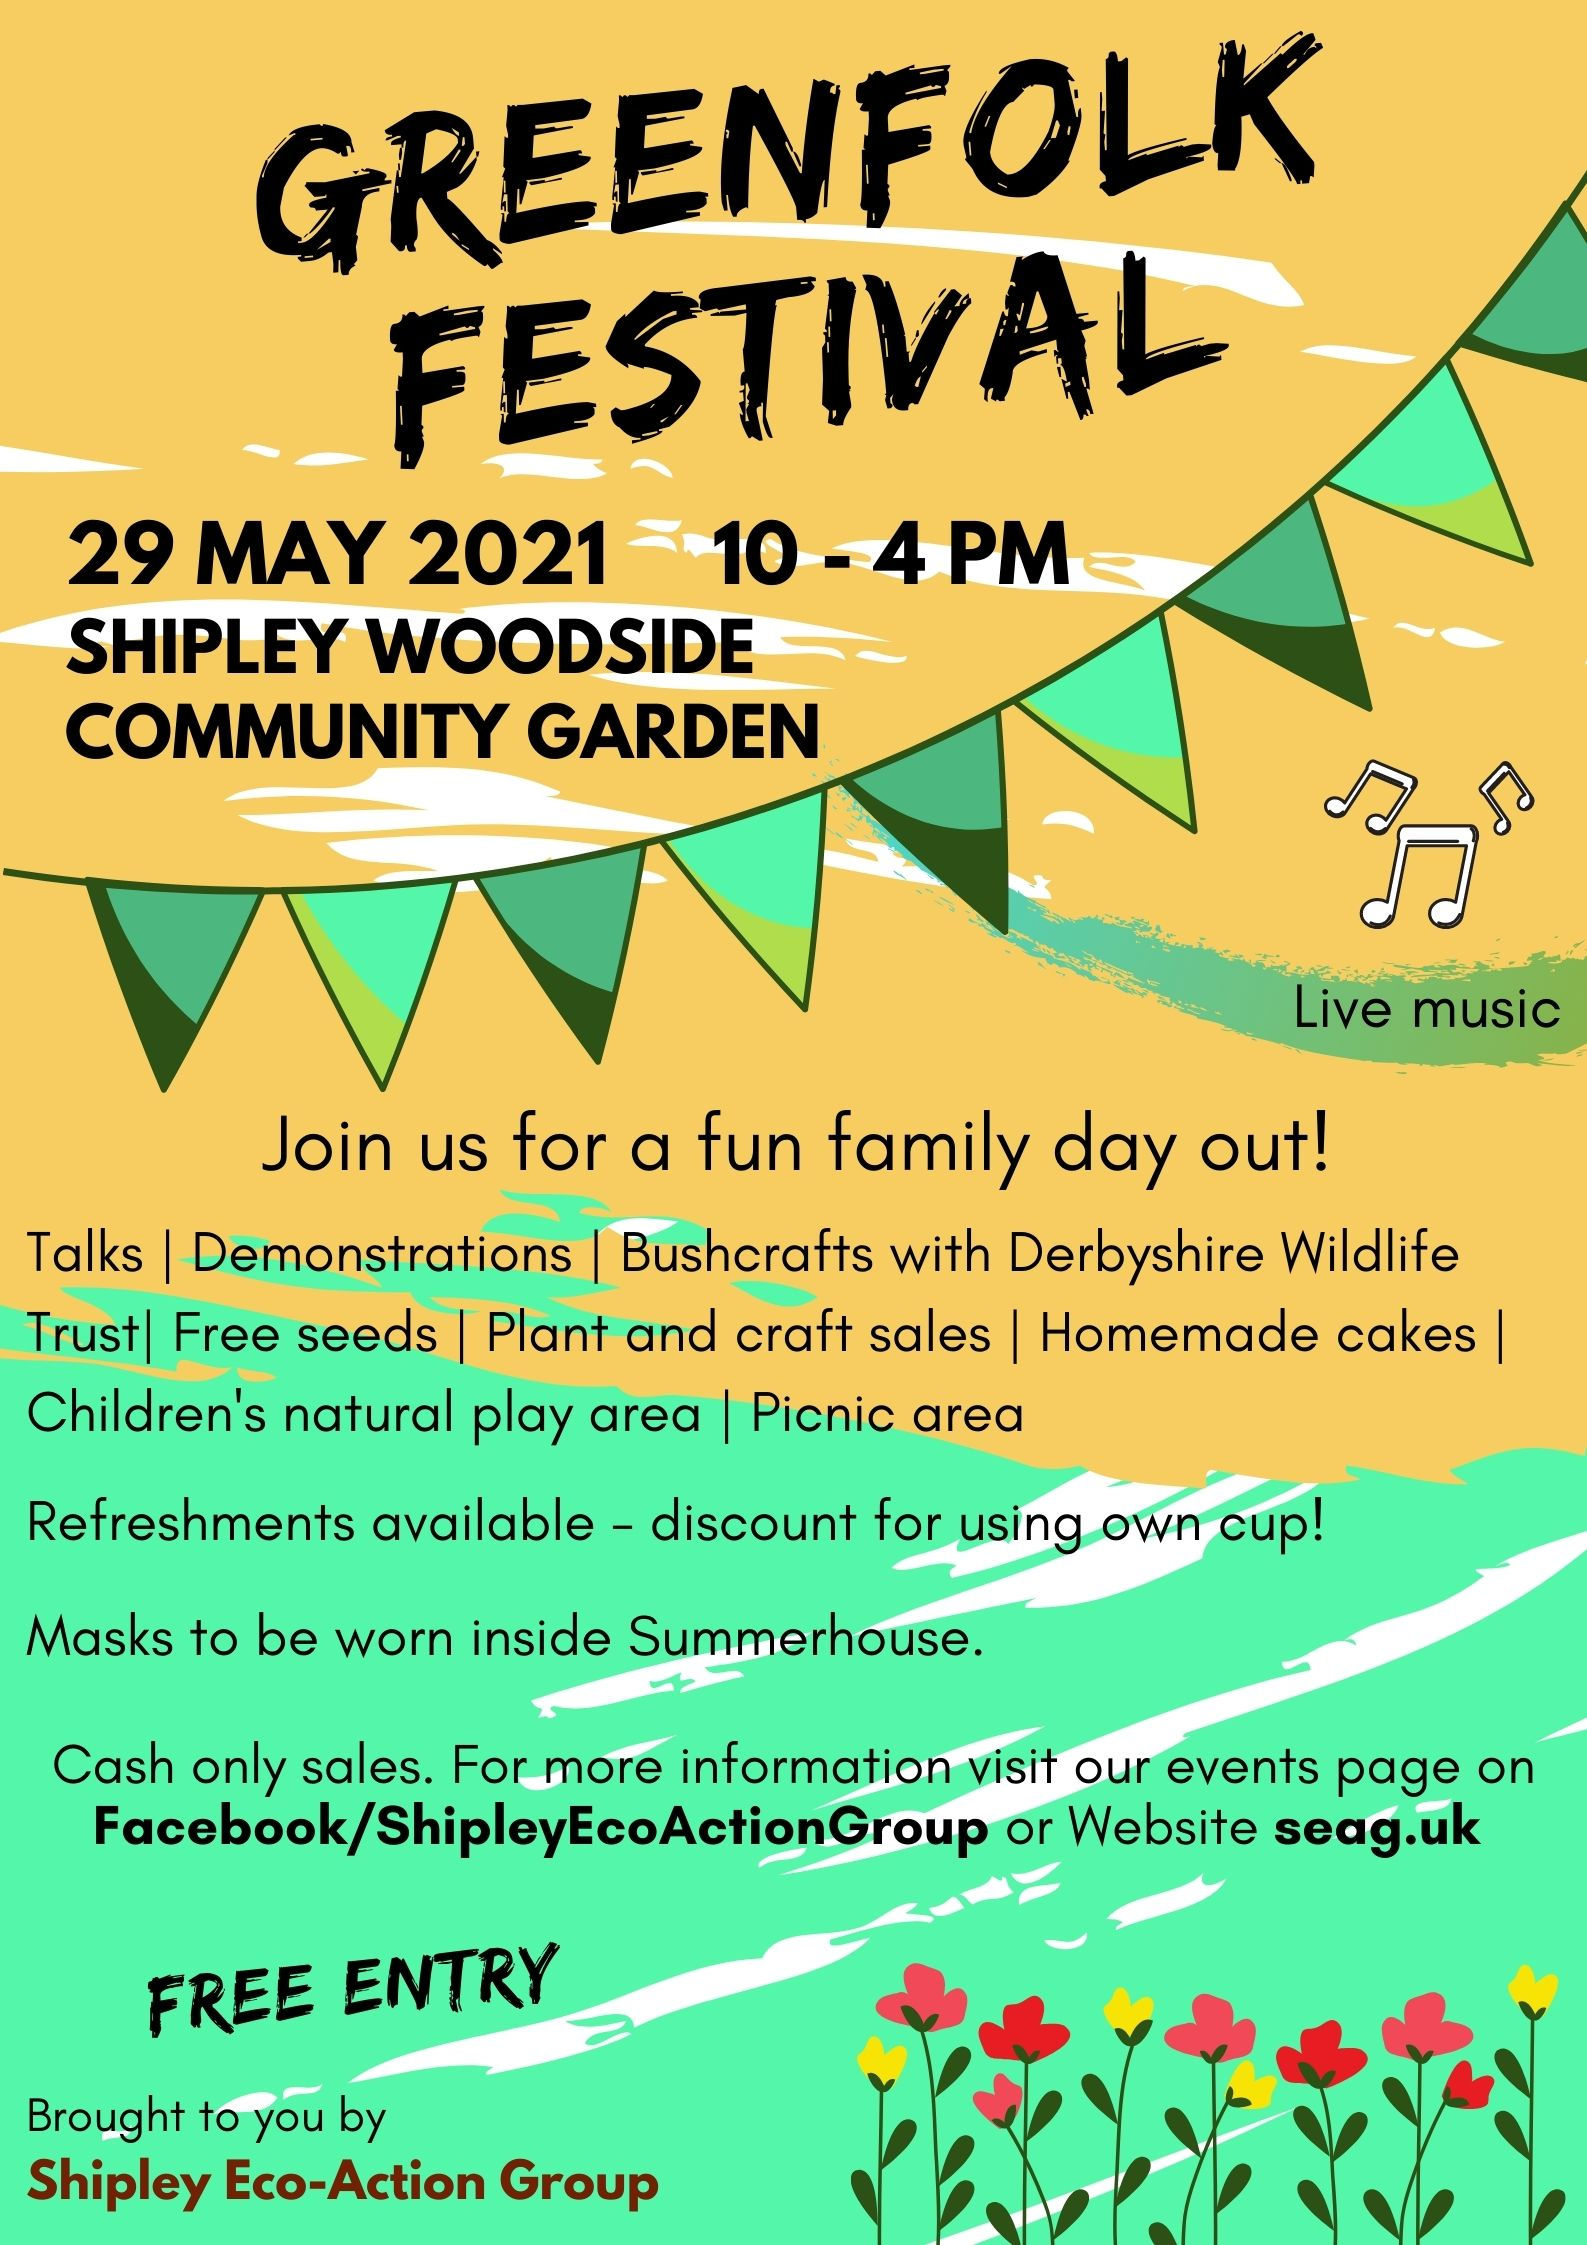 Greenfolk festival 29 May 2021